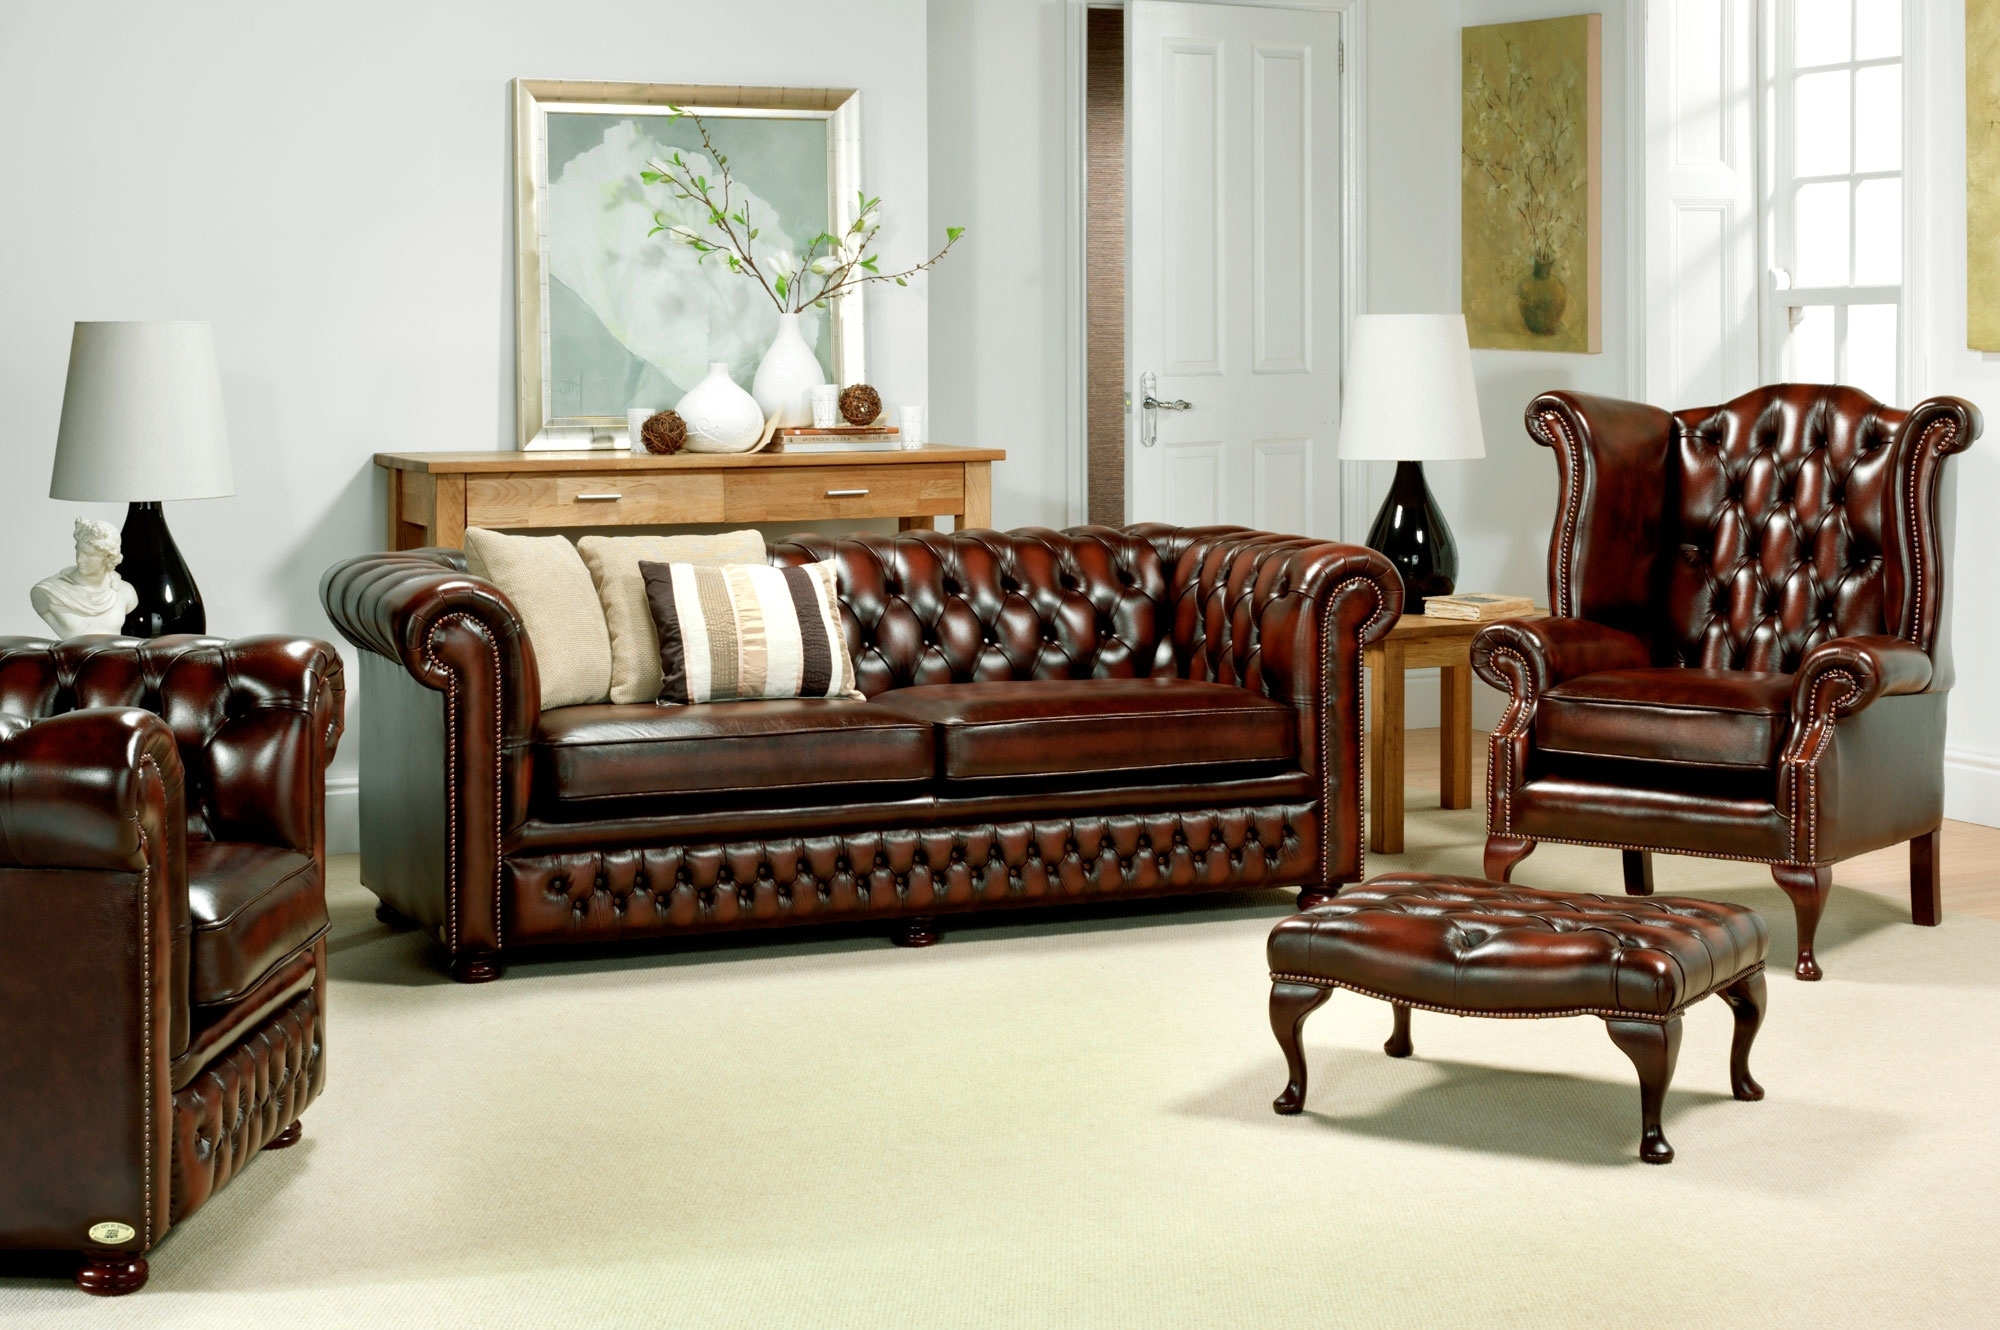 Top 20 Of Chesterfield Sofas And Chairs